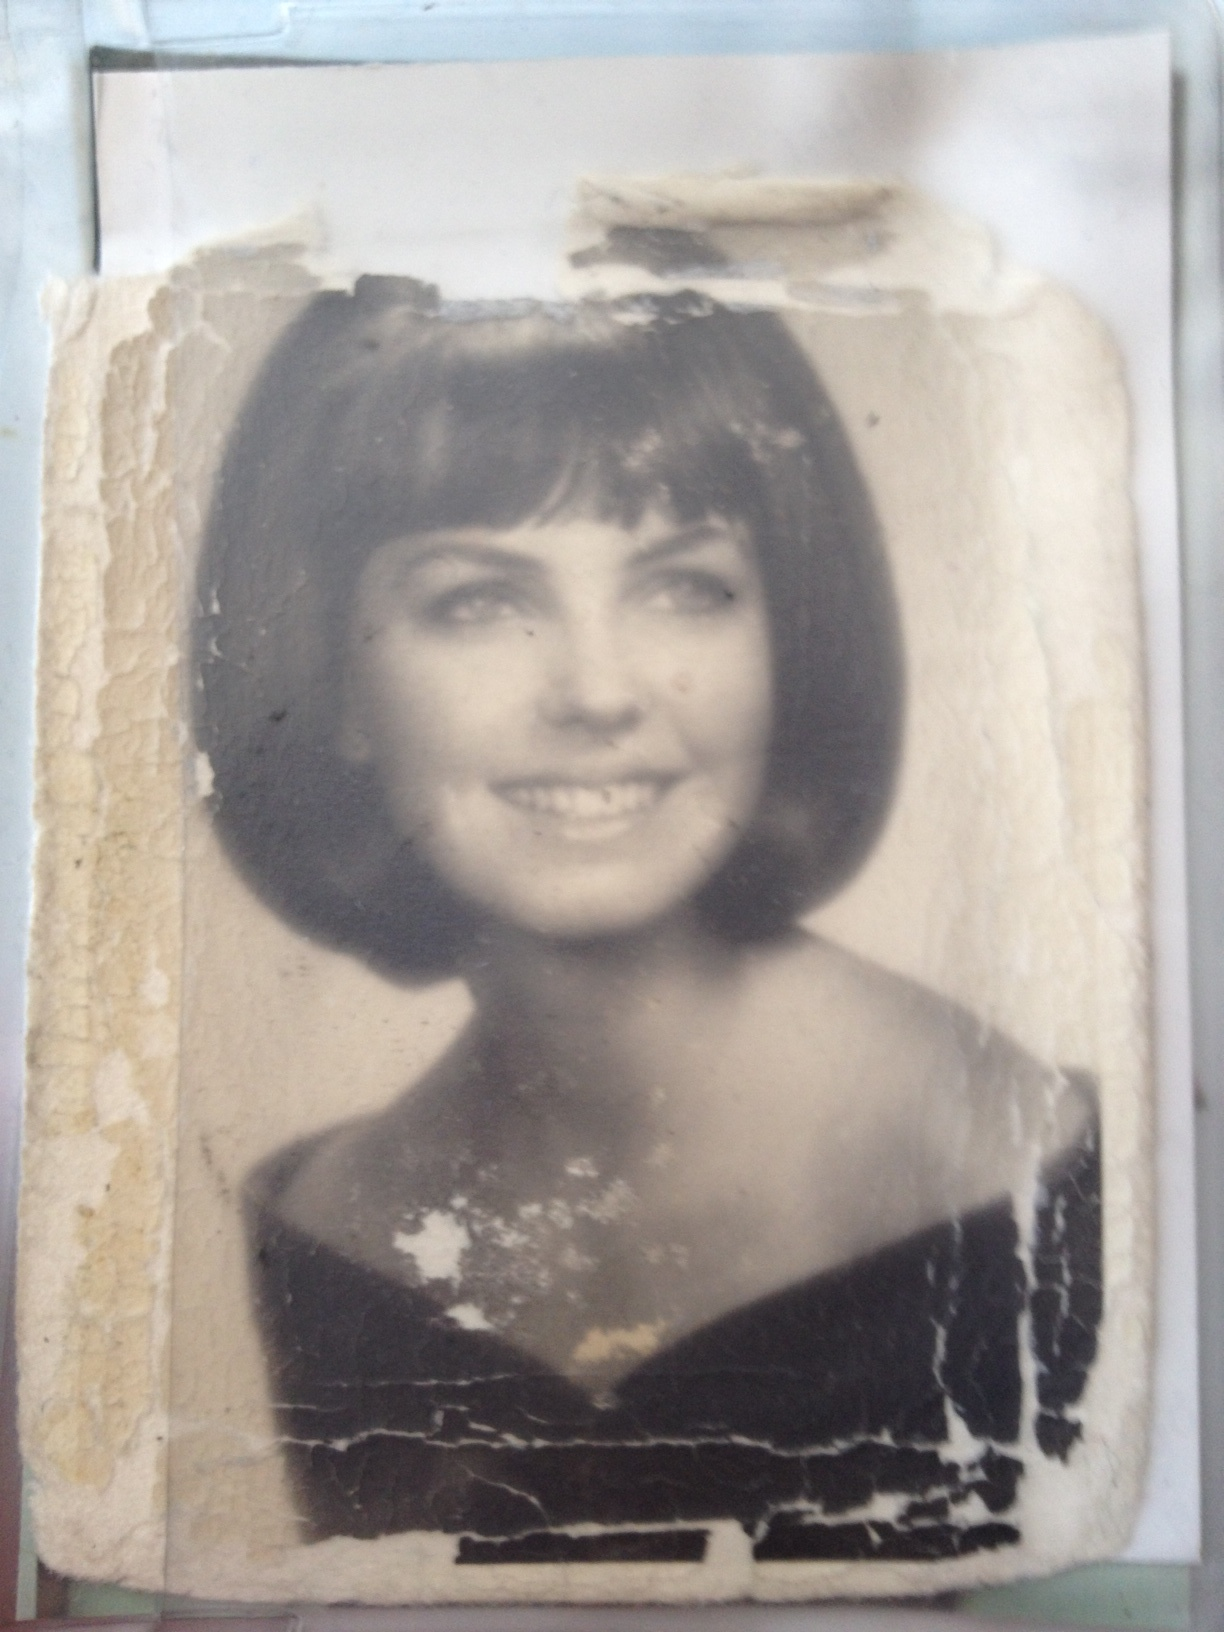 my dad has kept this picture of my mom circa 1965 in his wallet